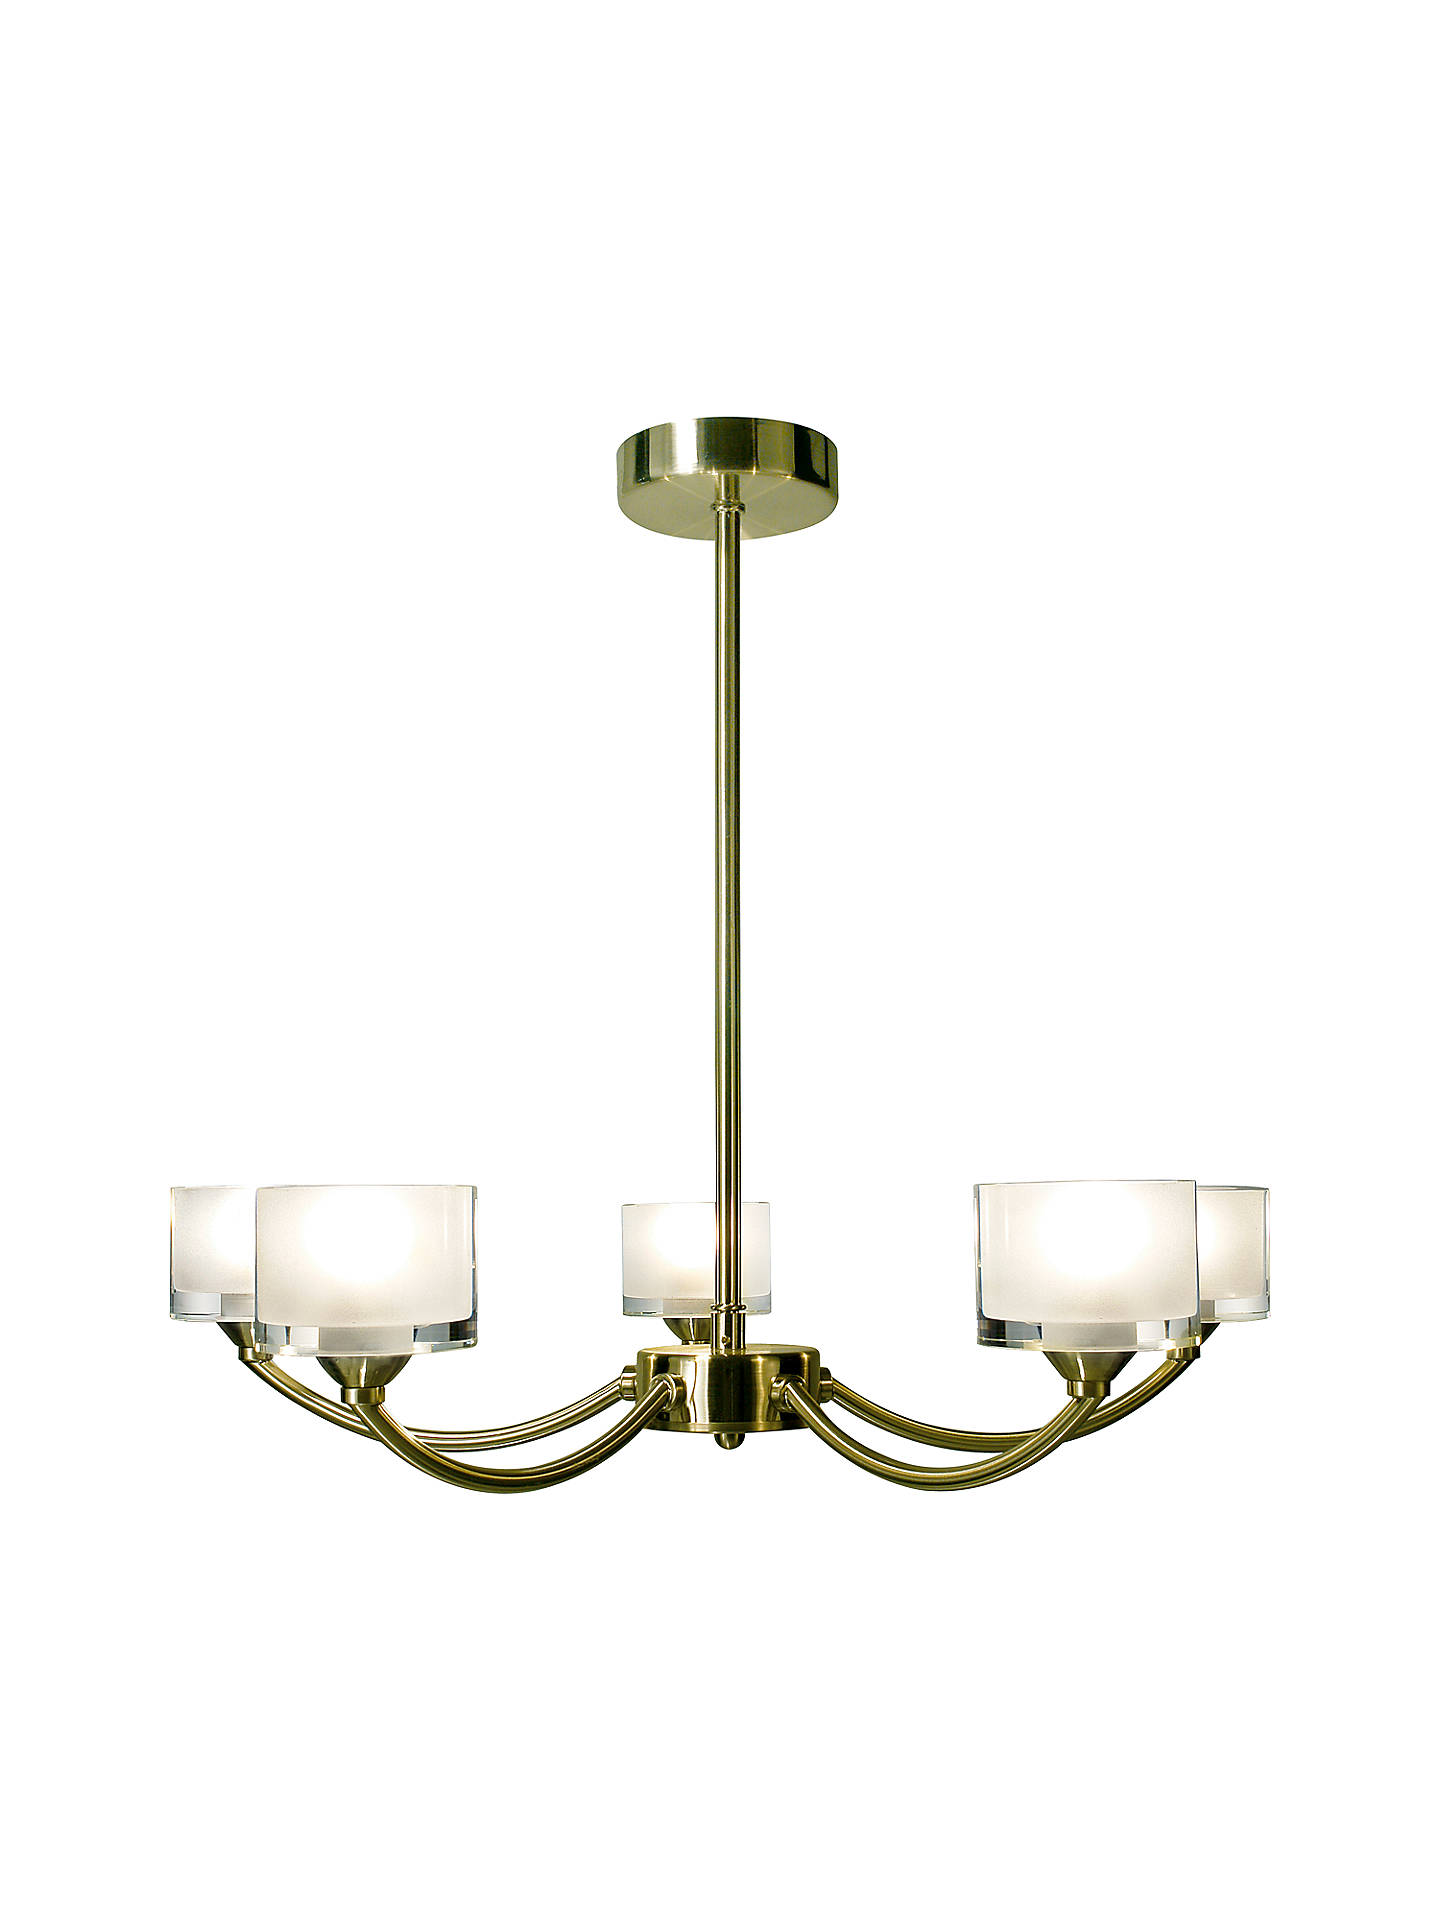 BuyJohn Lewis & Partners Paige Ceiling Light, 5 Arm, Antique Brass Online at johnlewis.com